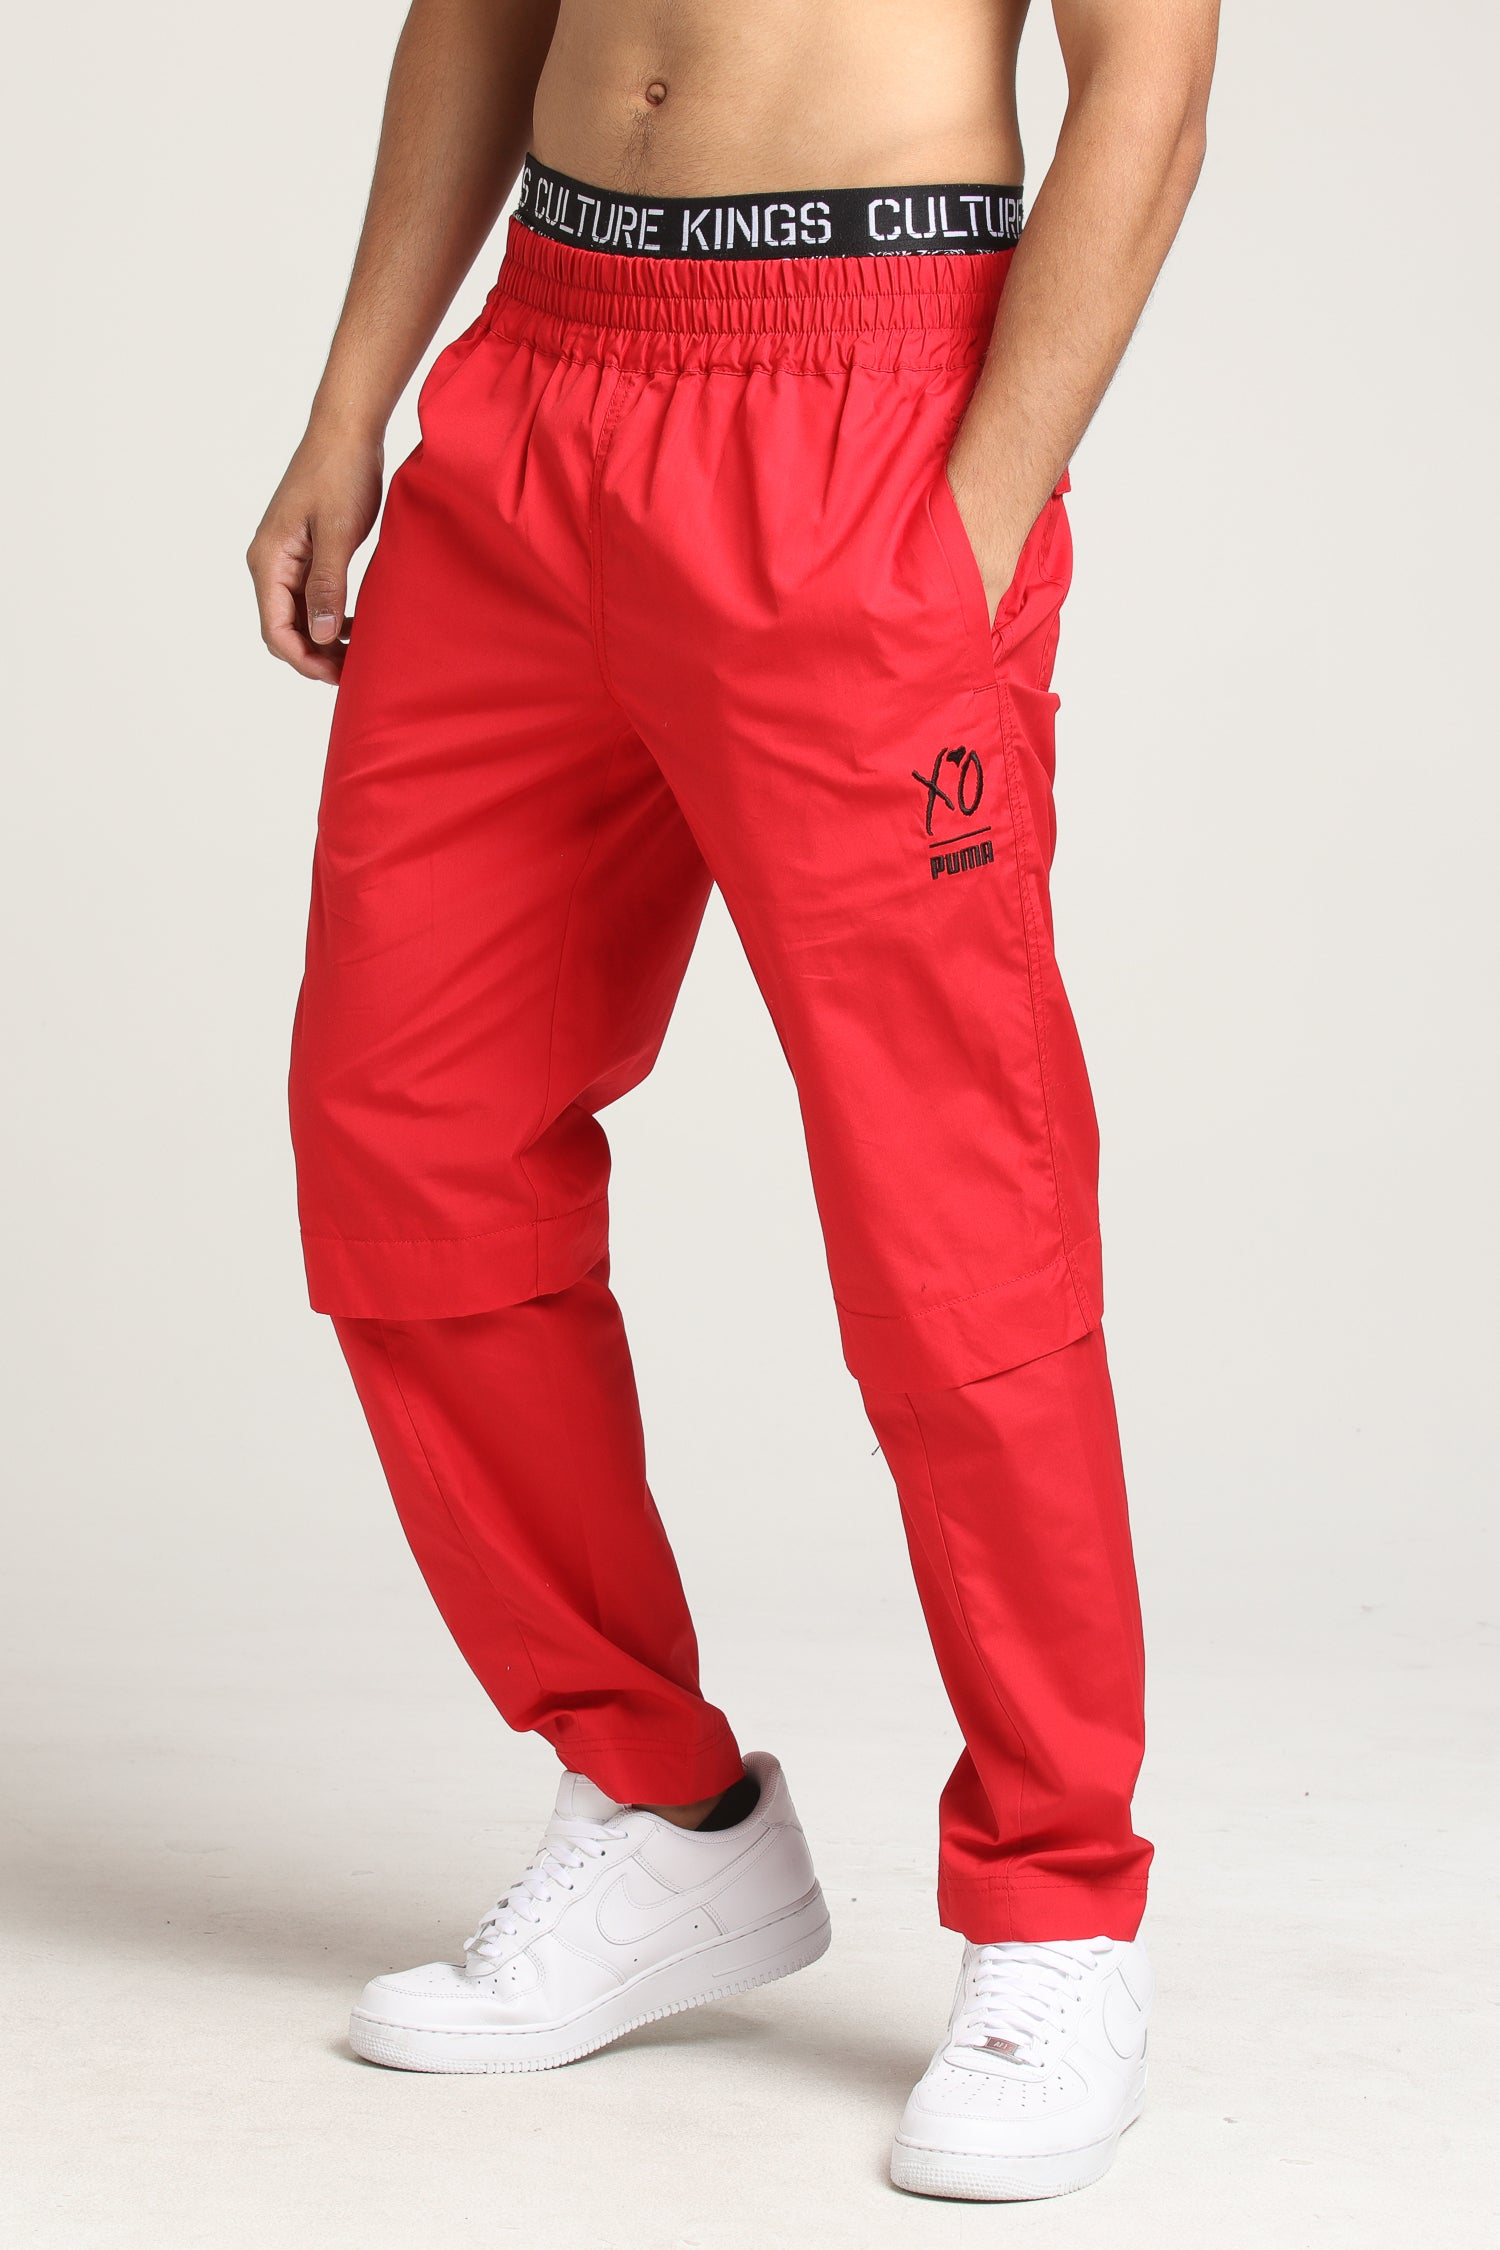 Puma X The Weeknd XO Woven Pant Red